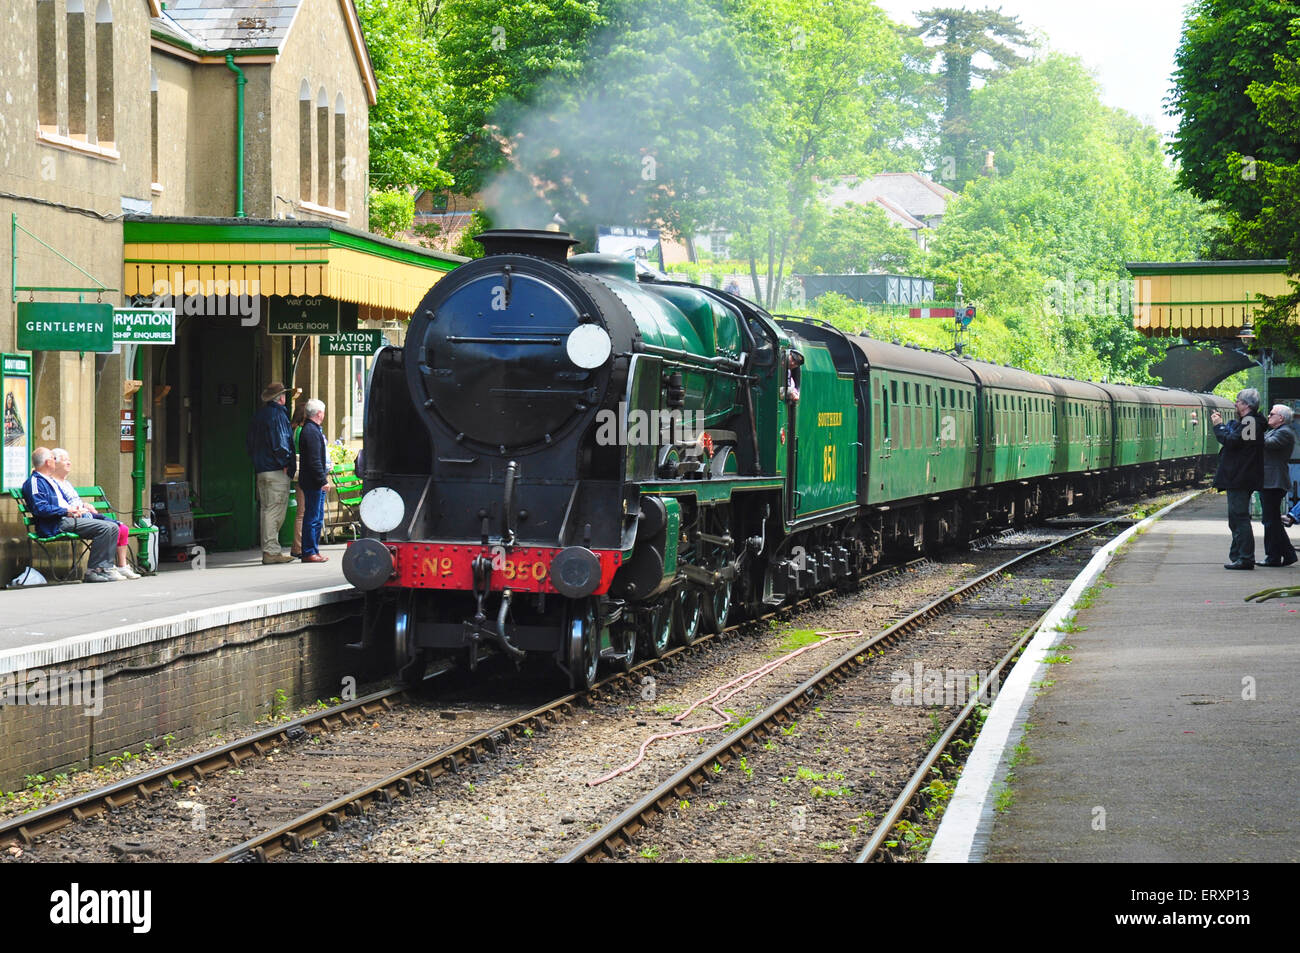 Preserved steam locomotive No 850, Lord Nelson arrives at Alresford on the Mid Hants Railway, Hampshire, England - Stock Image